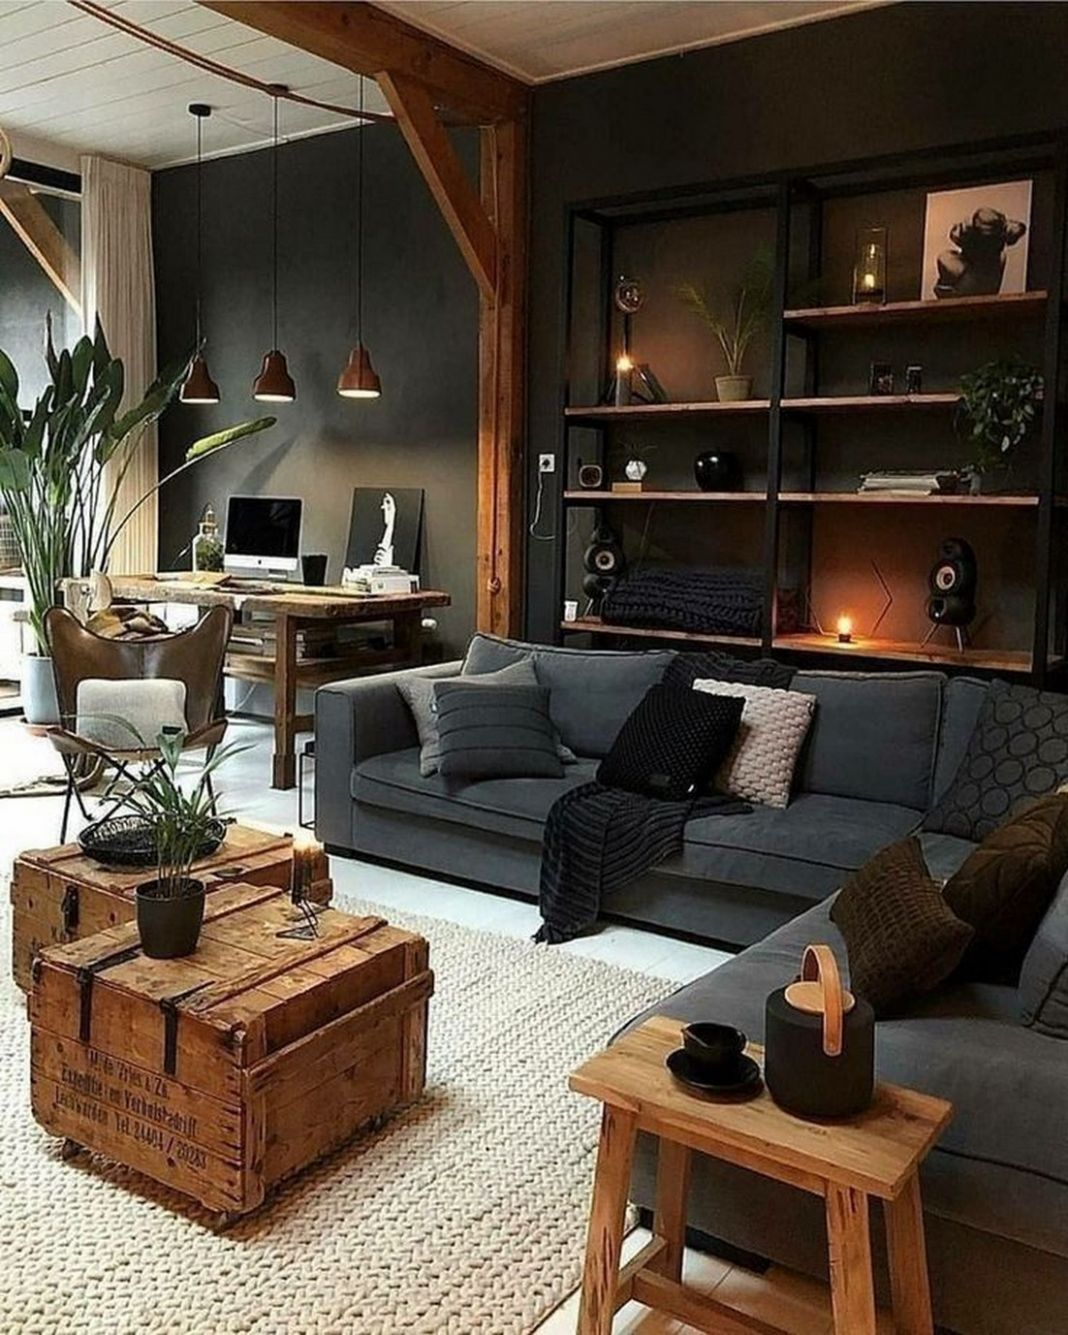 11+ Small Cozy Living Room Decorating Ideas For Your Apartment ..